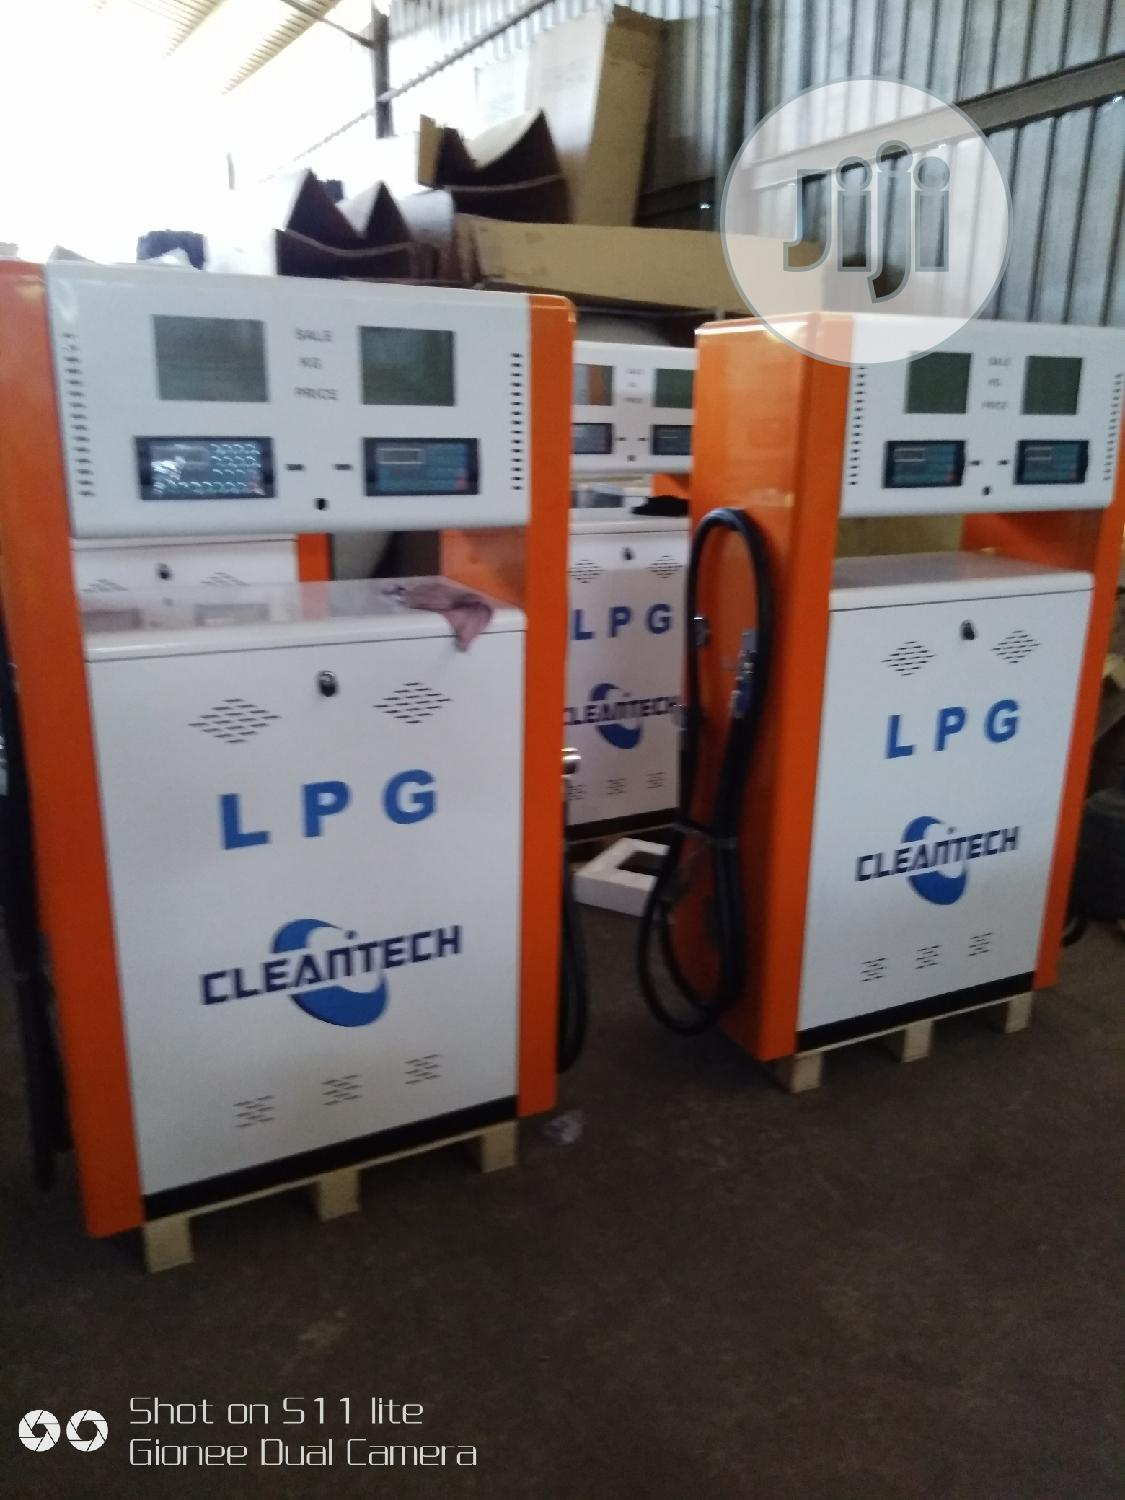 Buy Quality Imported Automatic Fuel and Lpg Dispensers